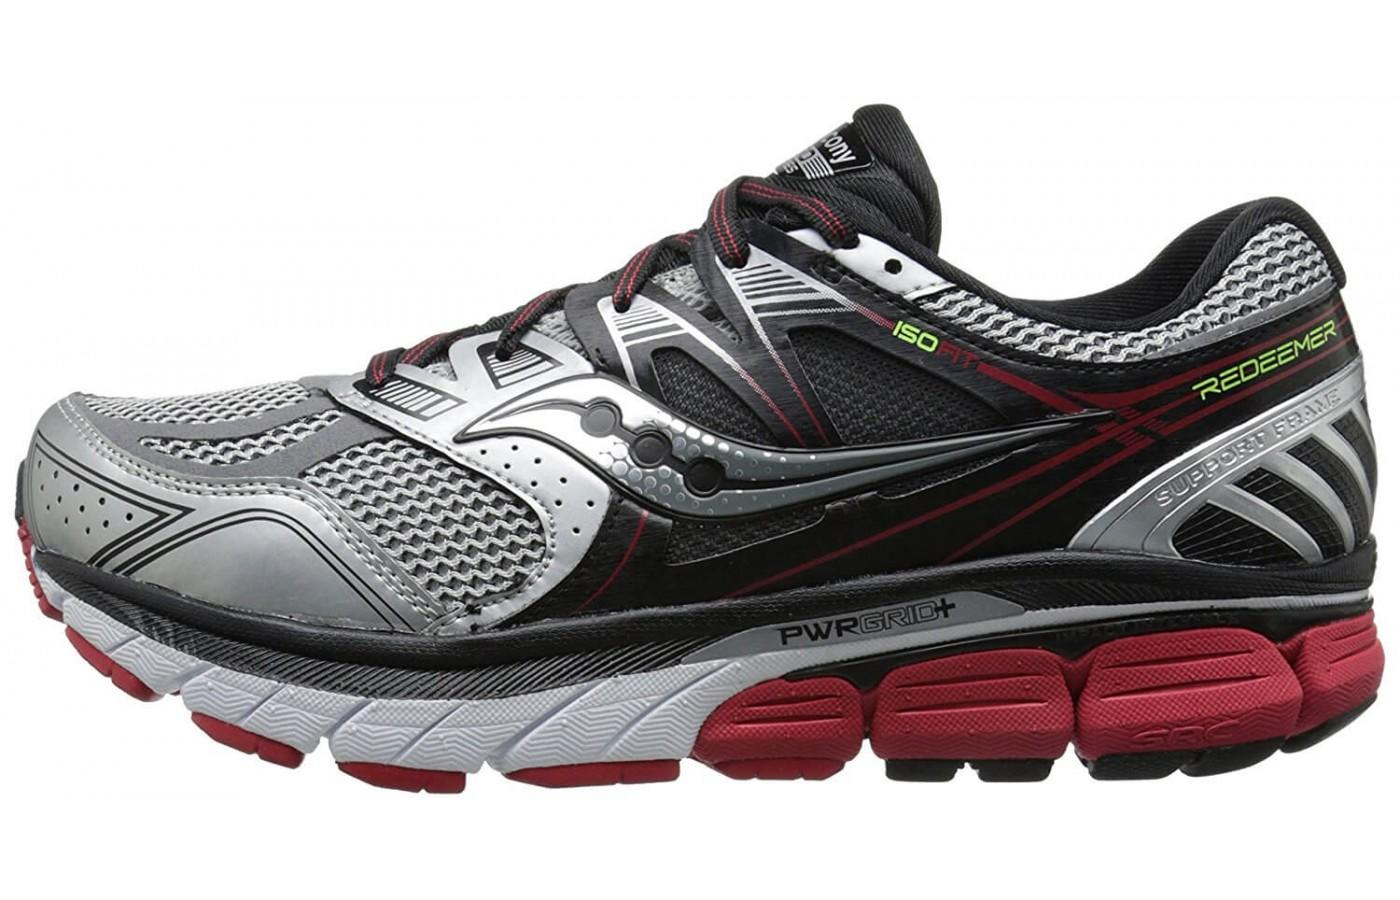 Saucony Redeemer ISO has a profile that's quite unique